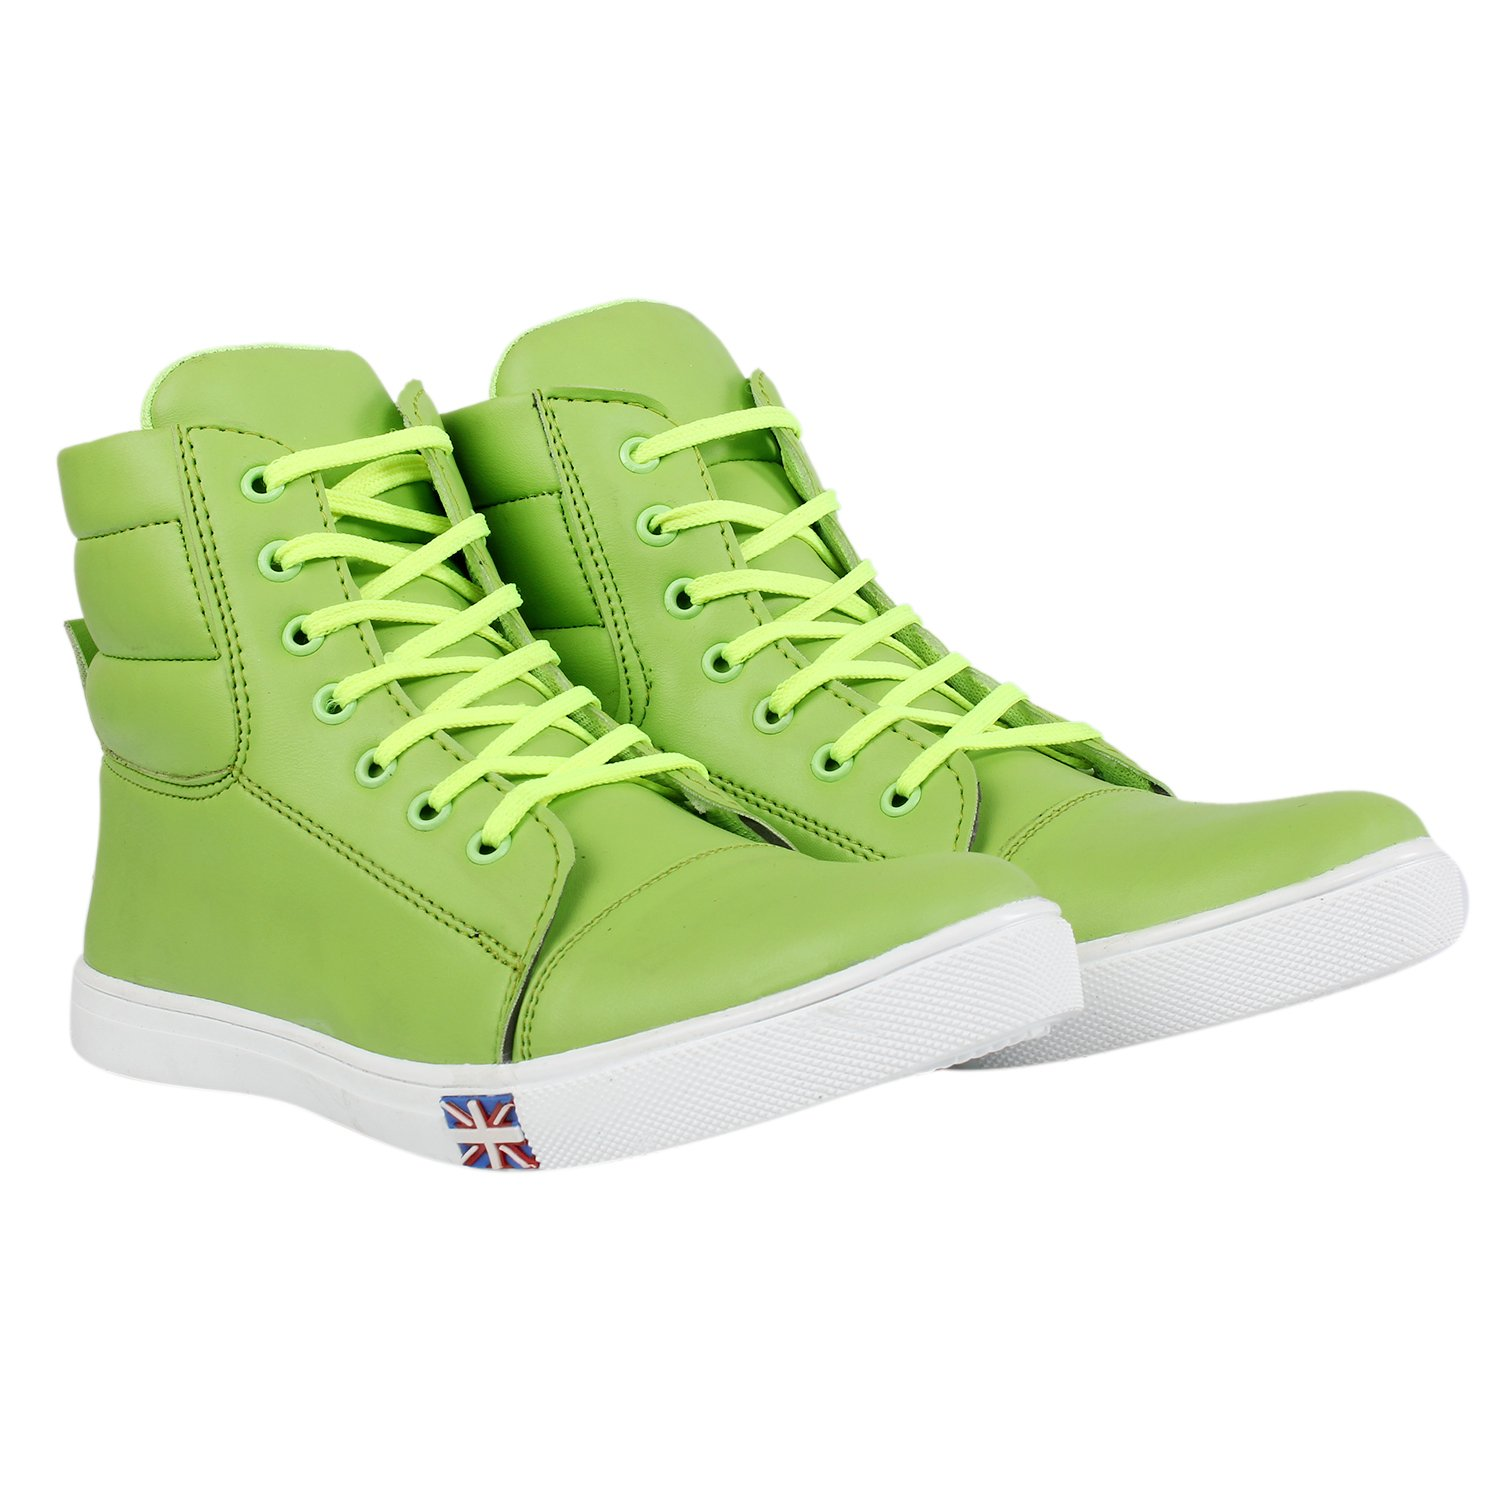 Buy Men's Green Synthetic Leather Long